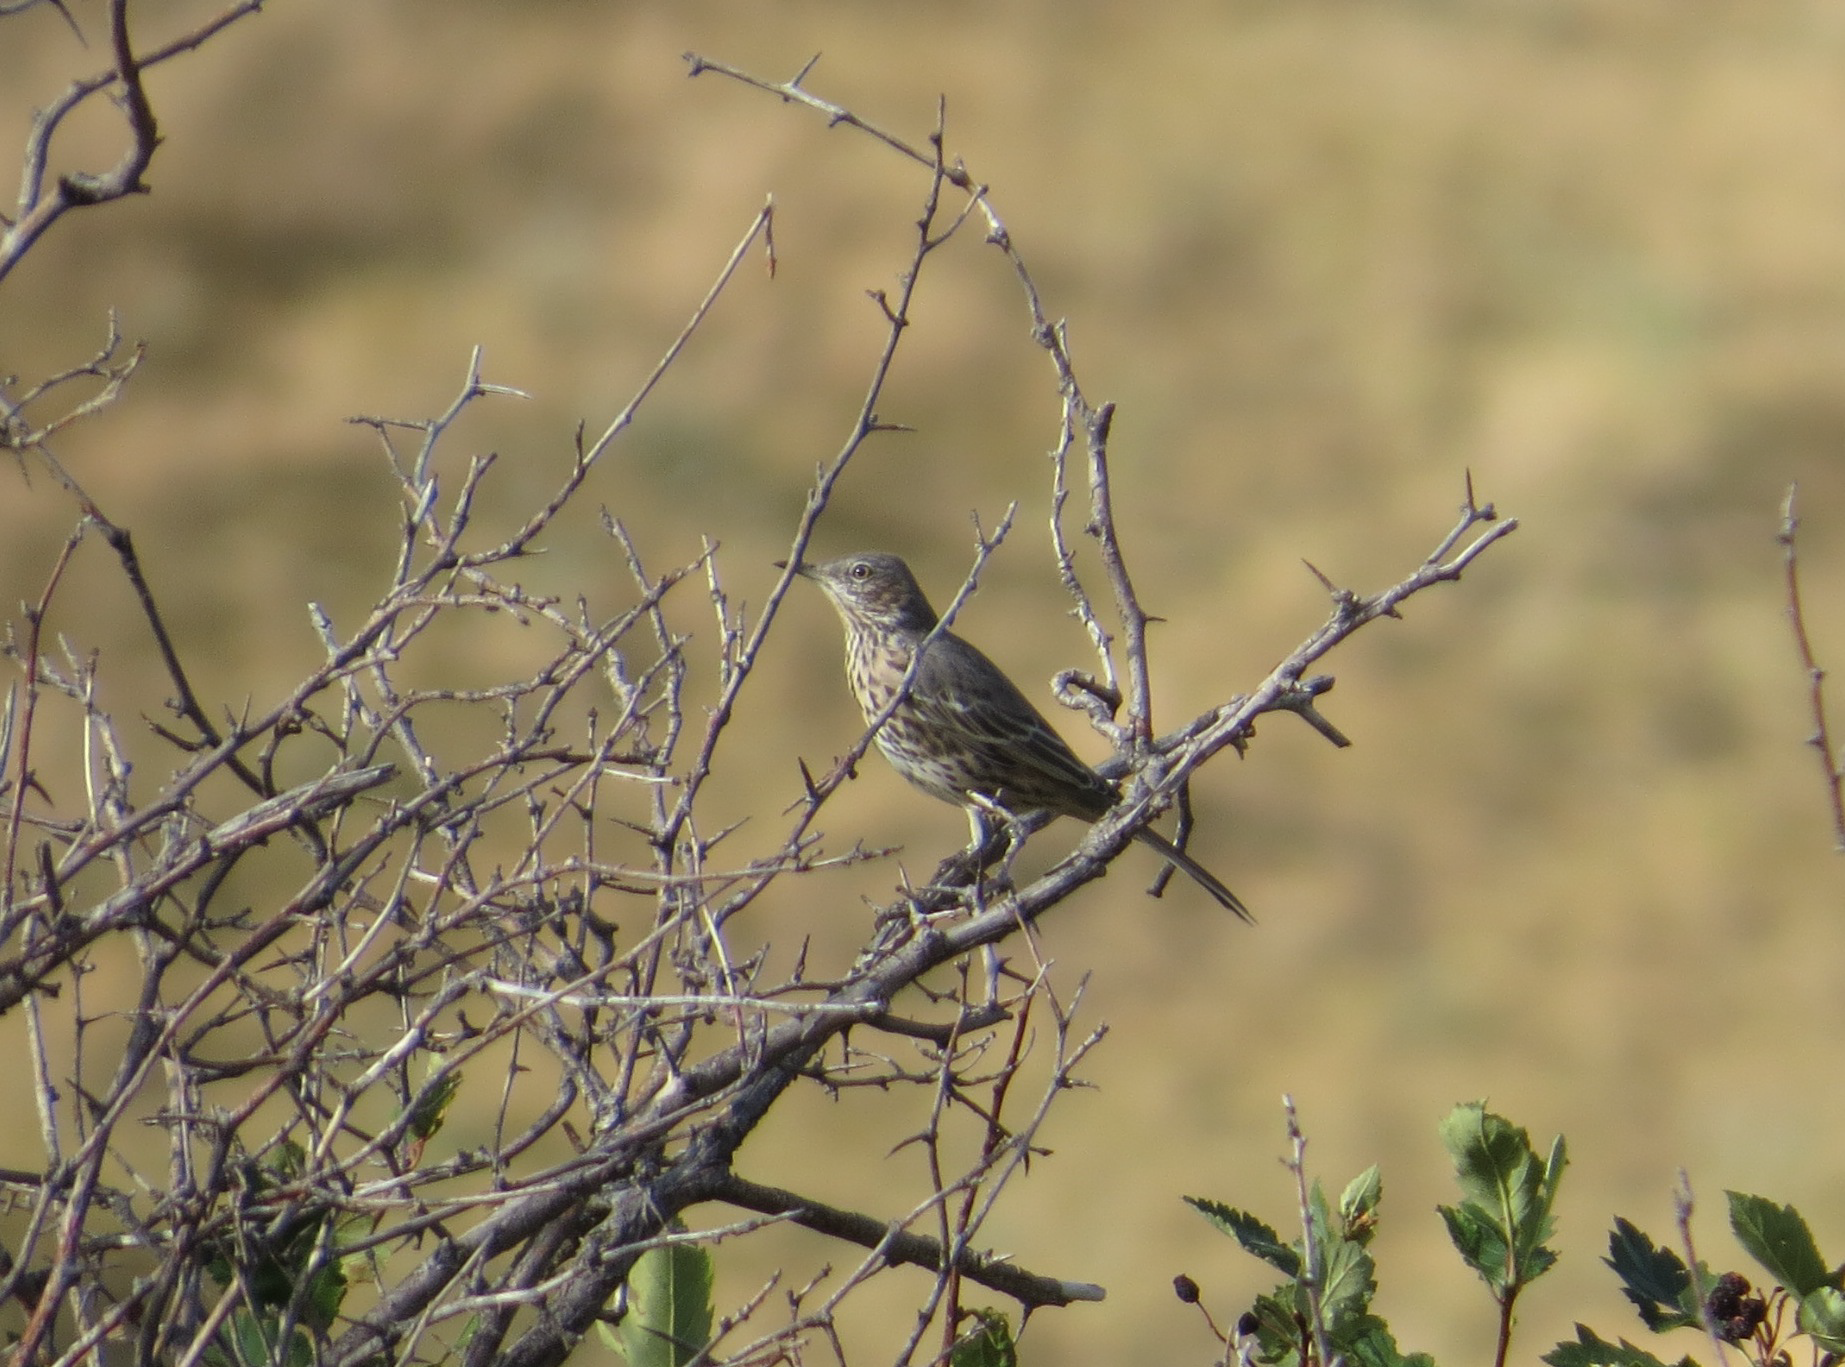 Kate spotted the second Sage Thrasher of the season.